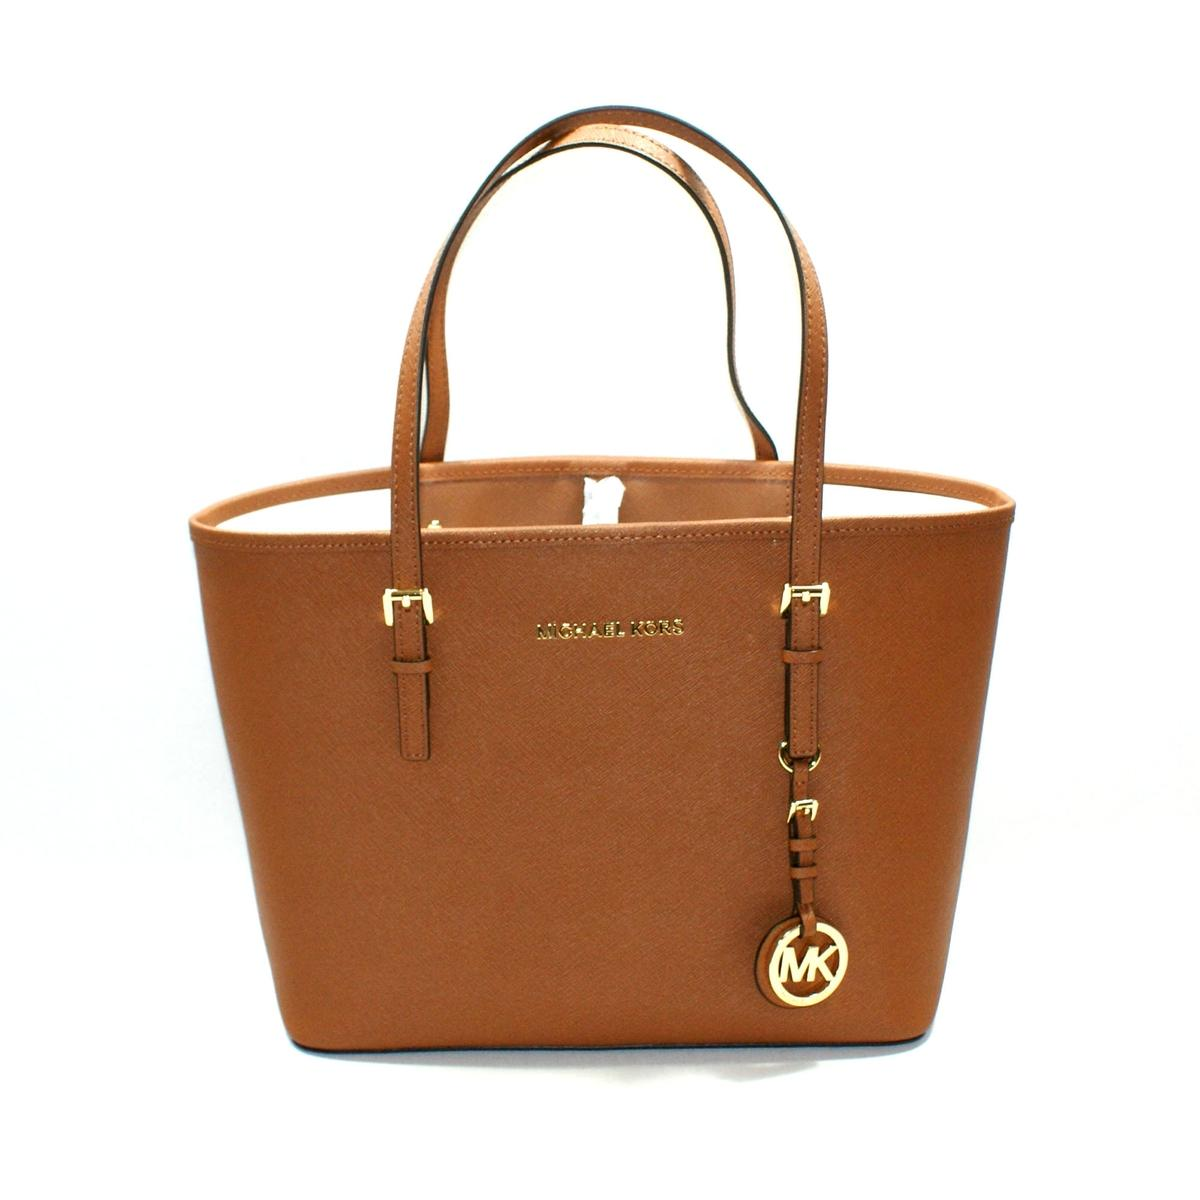 7238527999f7 Michael Kors Luggage Genuine Leather Small Travel Tote Bag ...